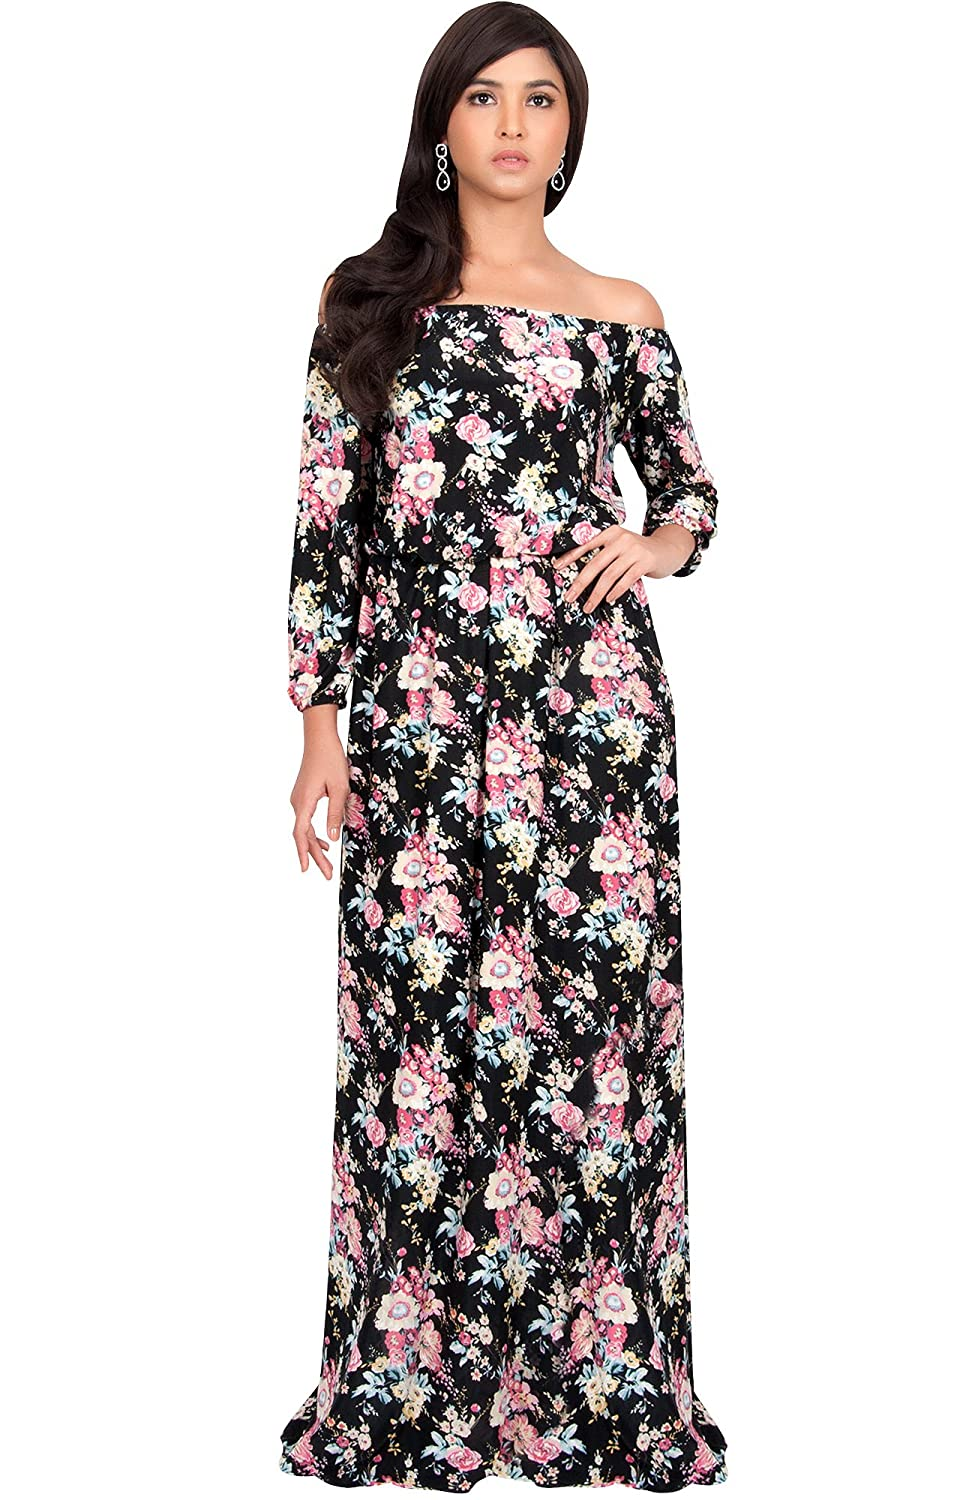 feb88bdbd96 Cute Summer Maxi Dresses For Cheap - Data Dynamic AG